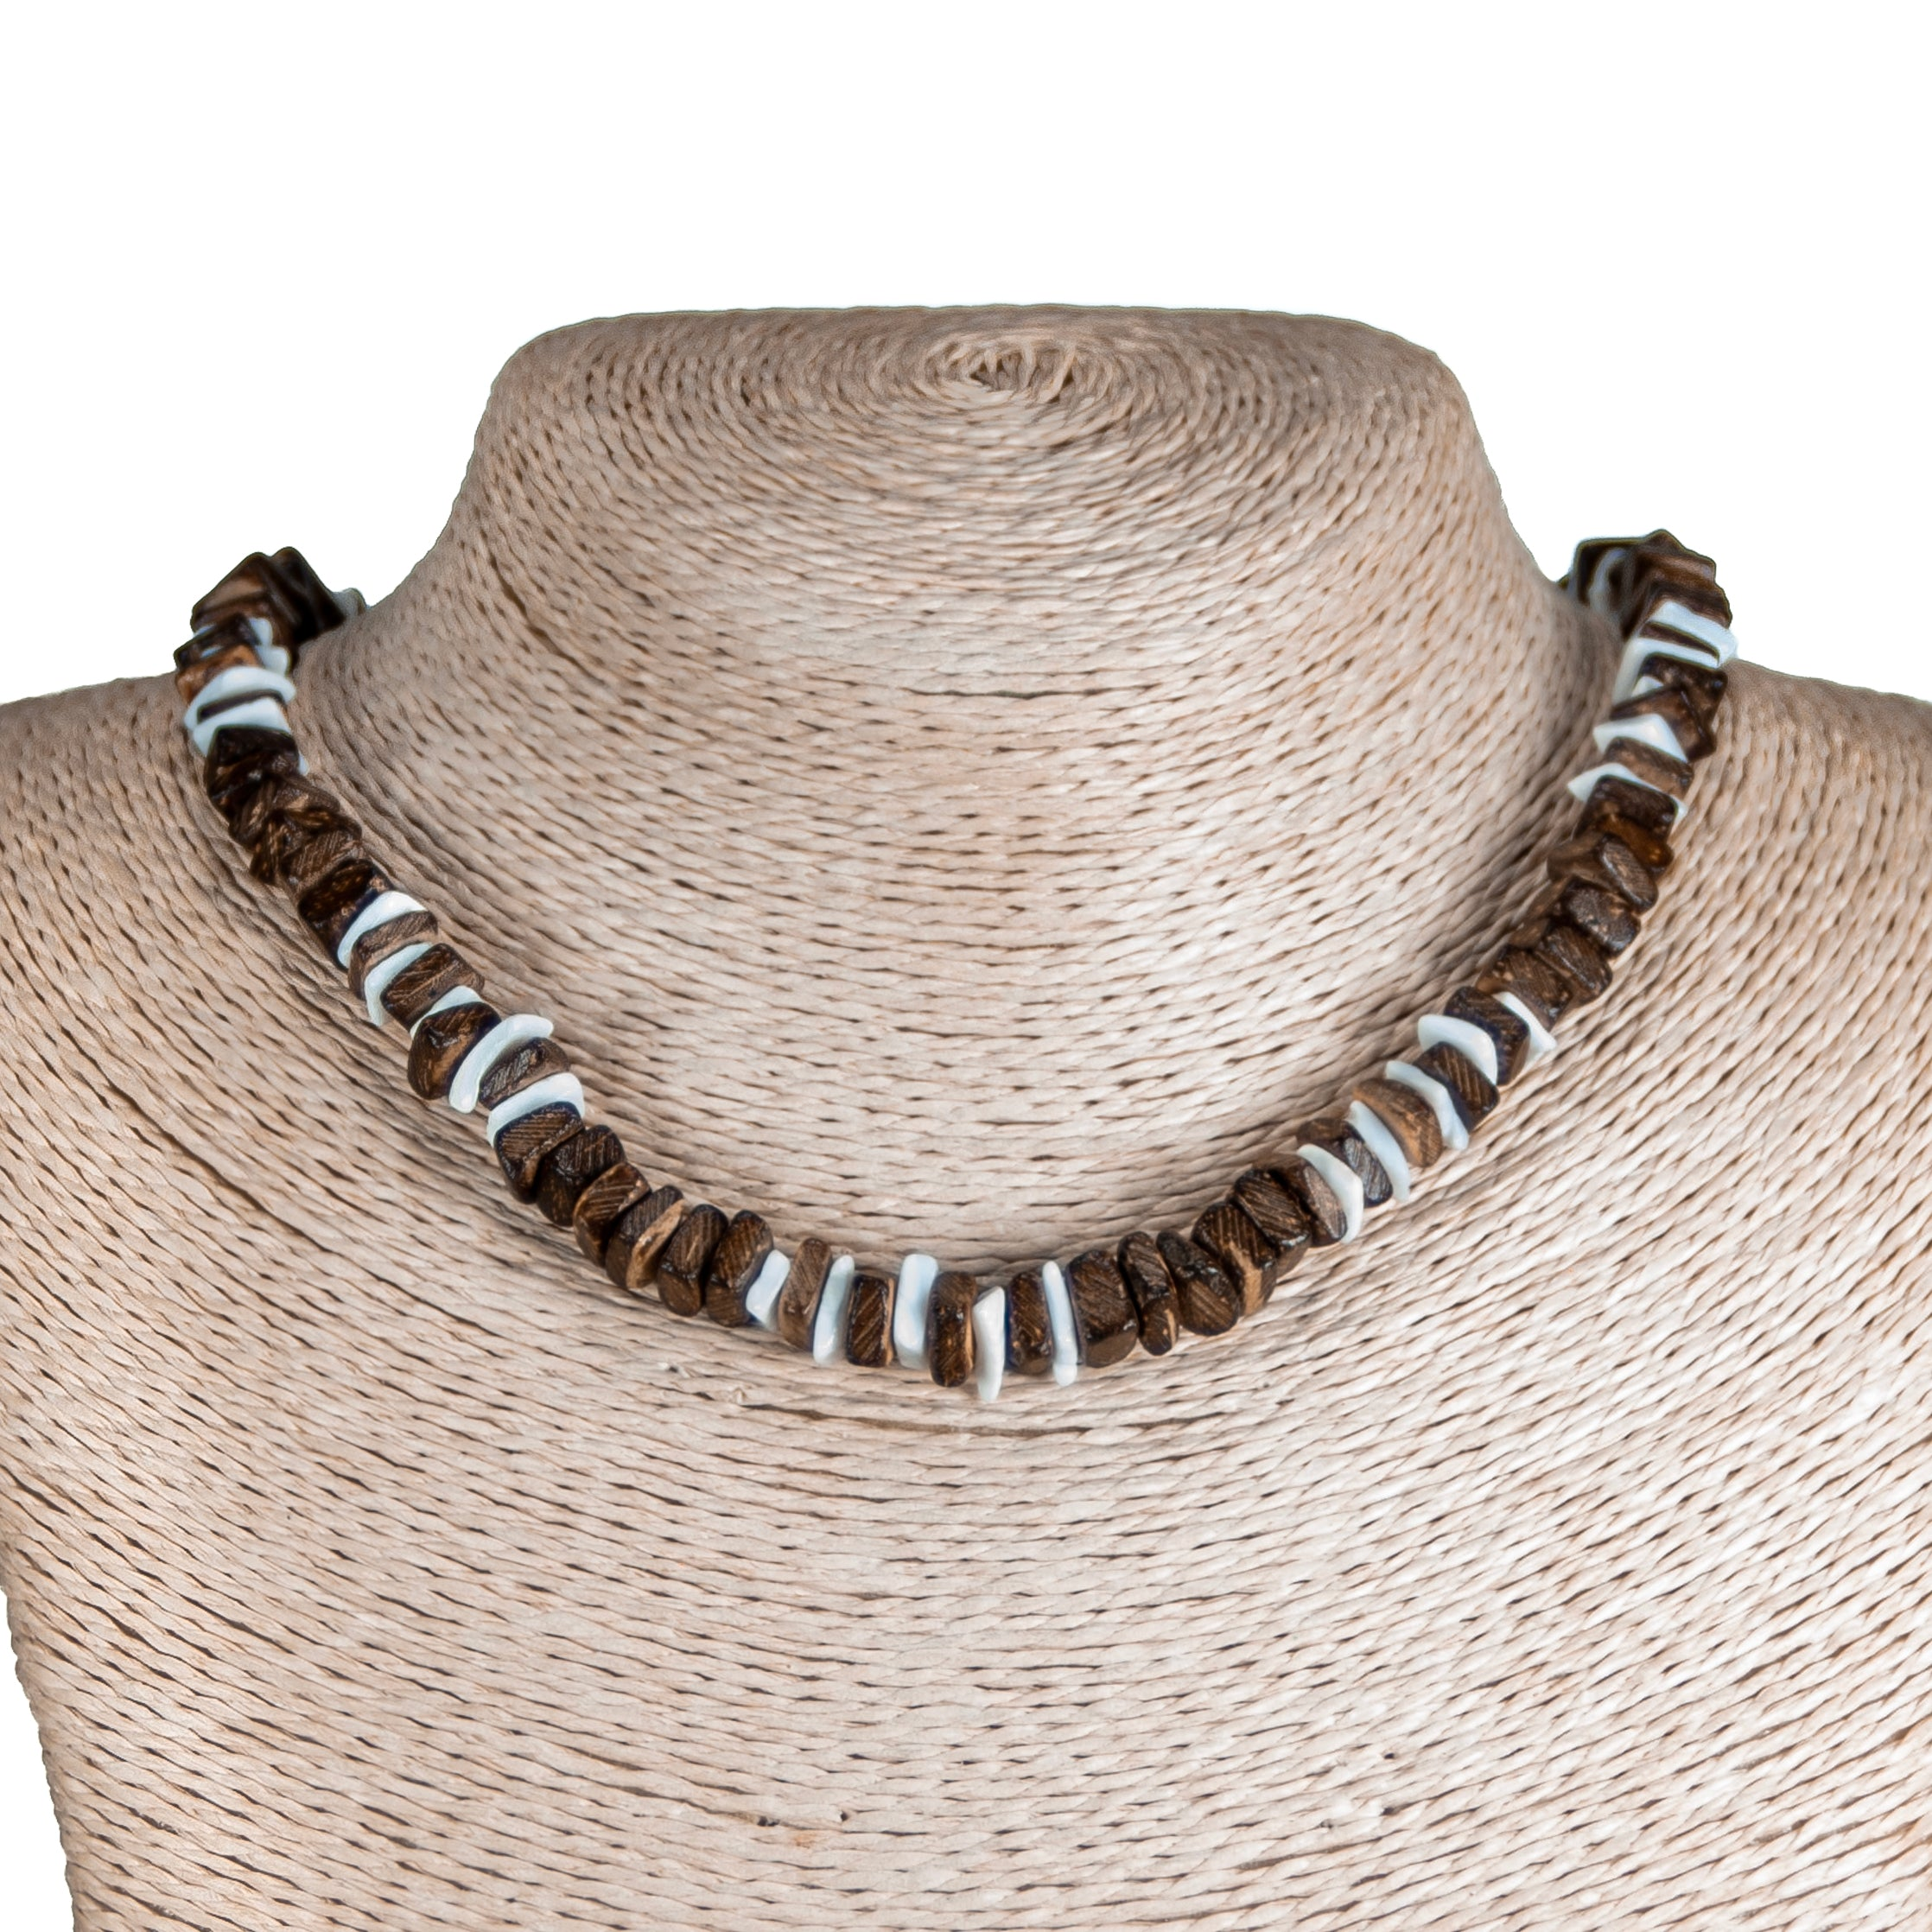 Brown Coconut and Puka Chip Shells Necklace & Anklet Set